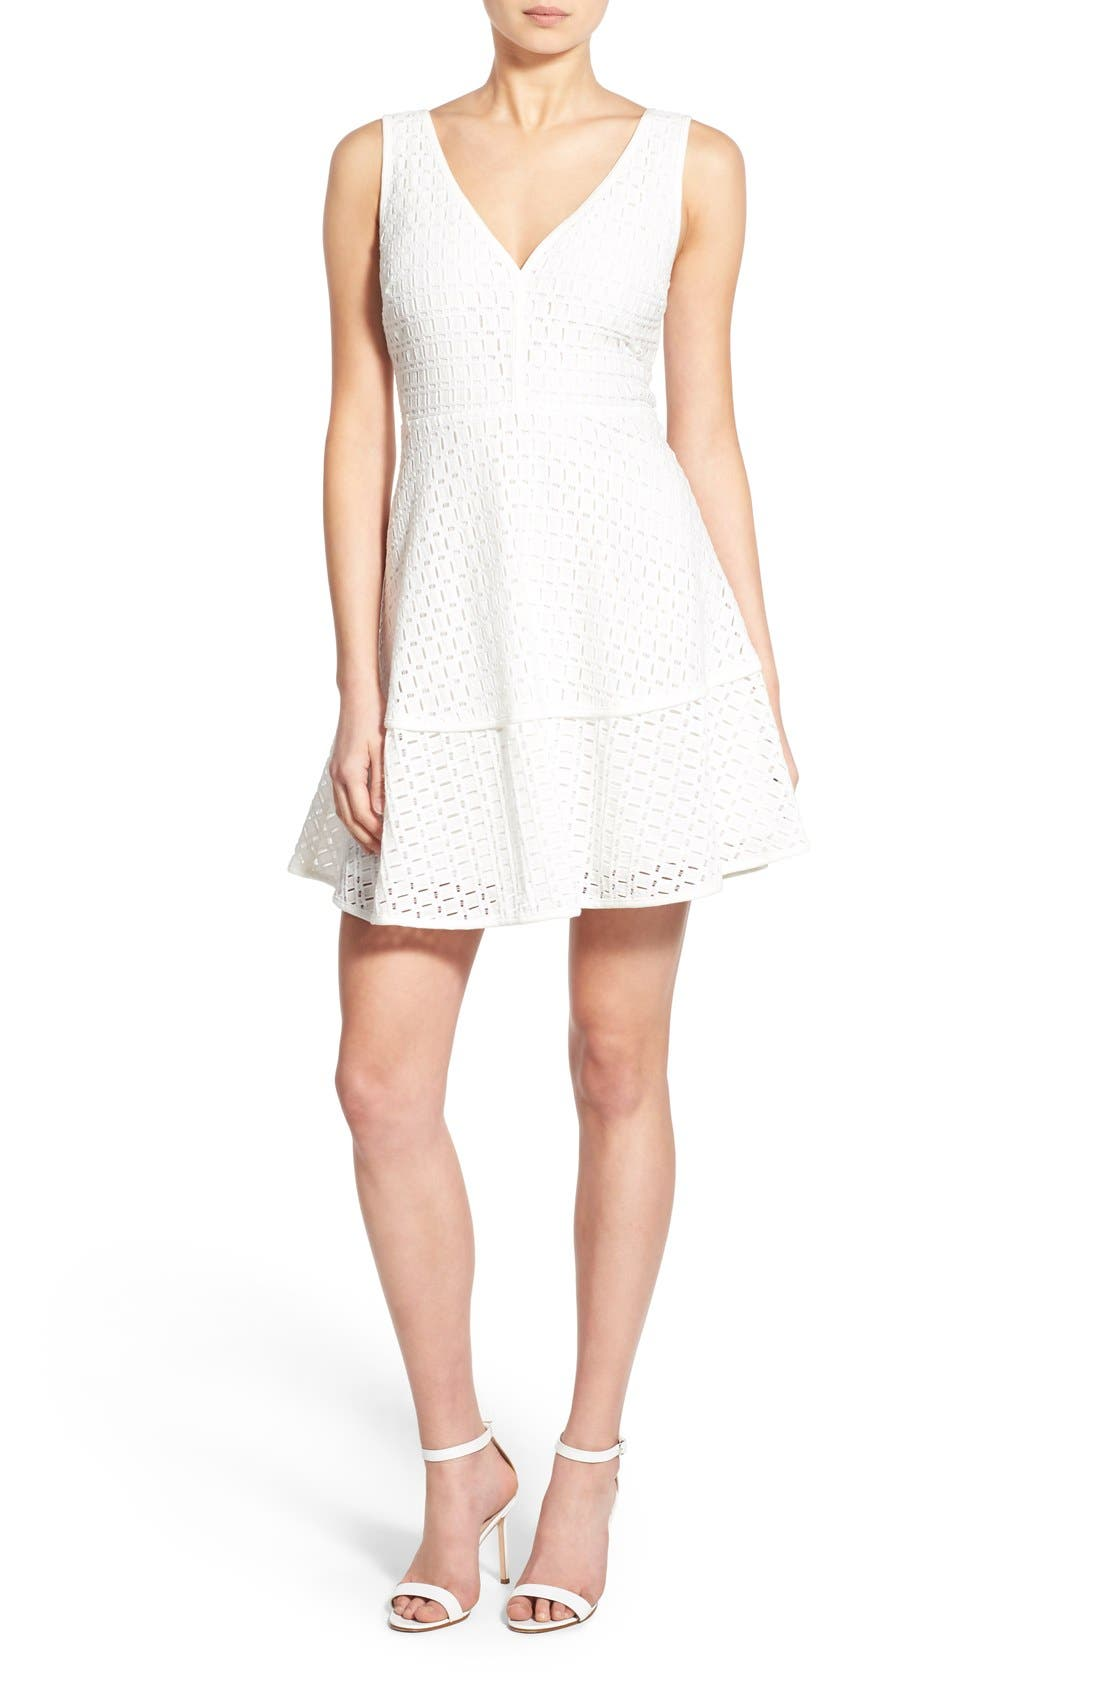 CUPCAKES AND CASHMERE, 'Matilda' Eyelet Fit & Flare Dress, Main thumbnail 1, color, 101